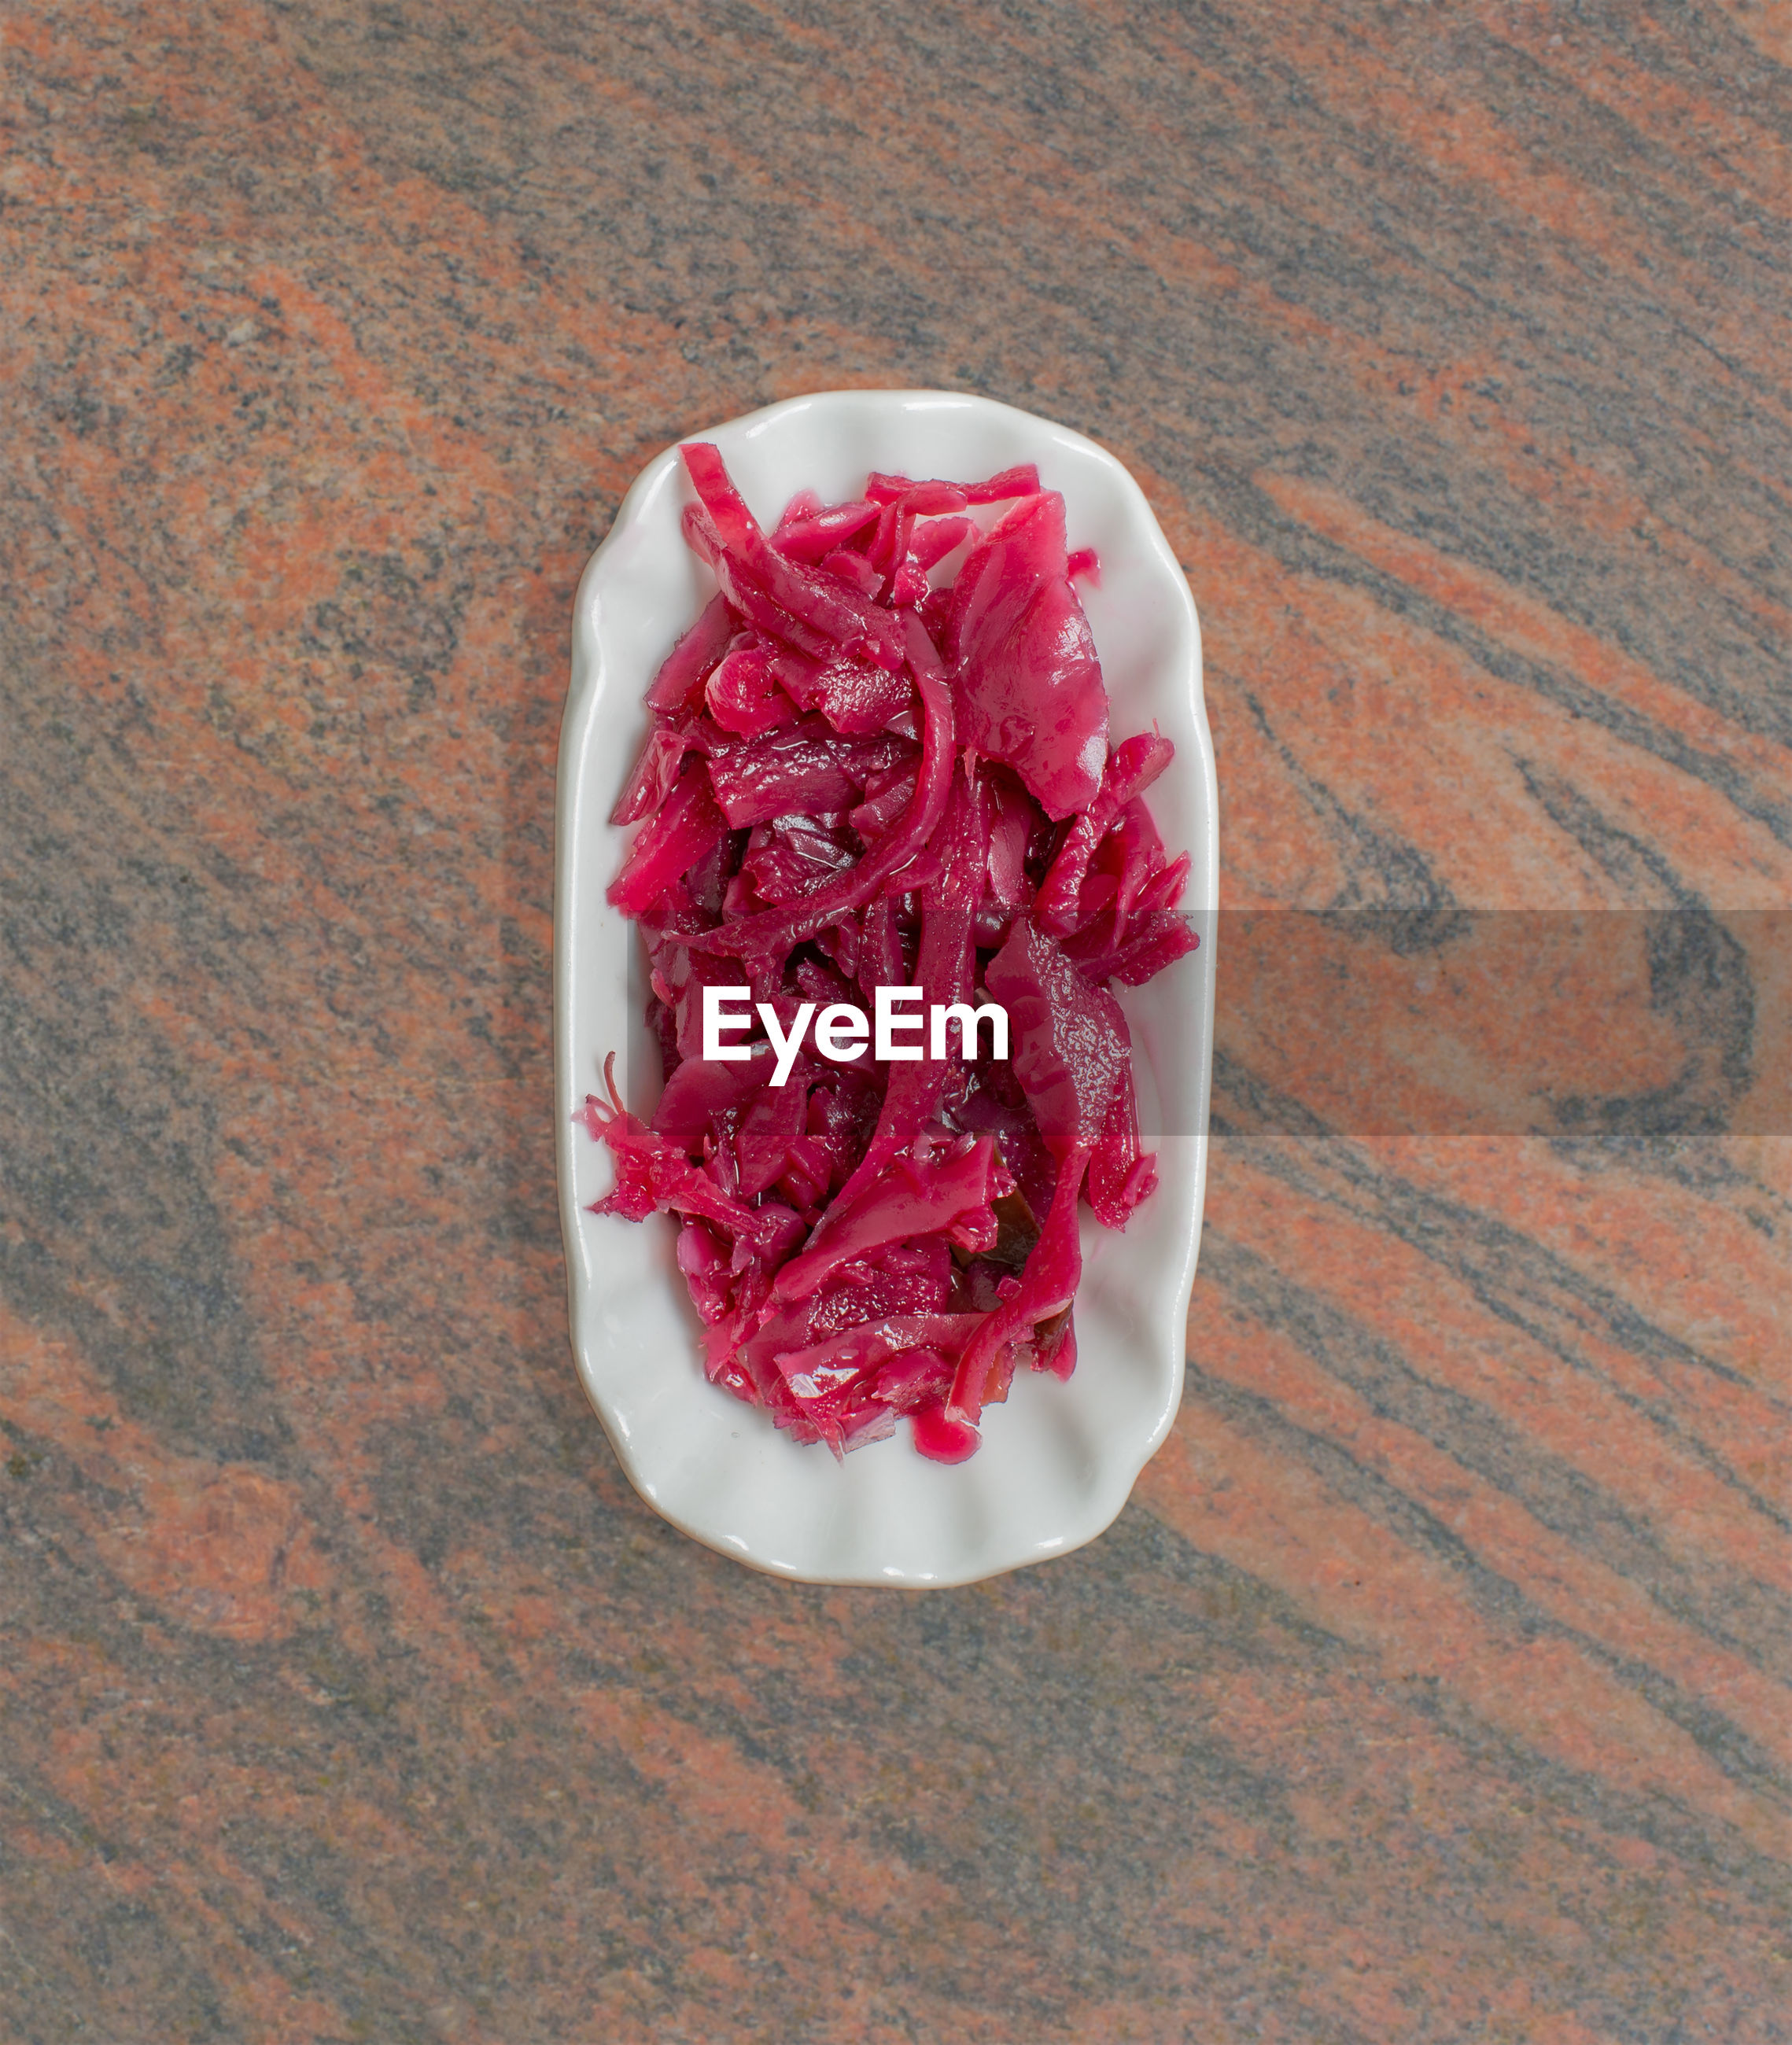 Red cabbage in a white bowl for food photography